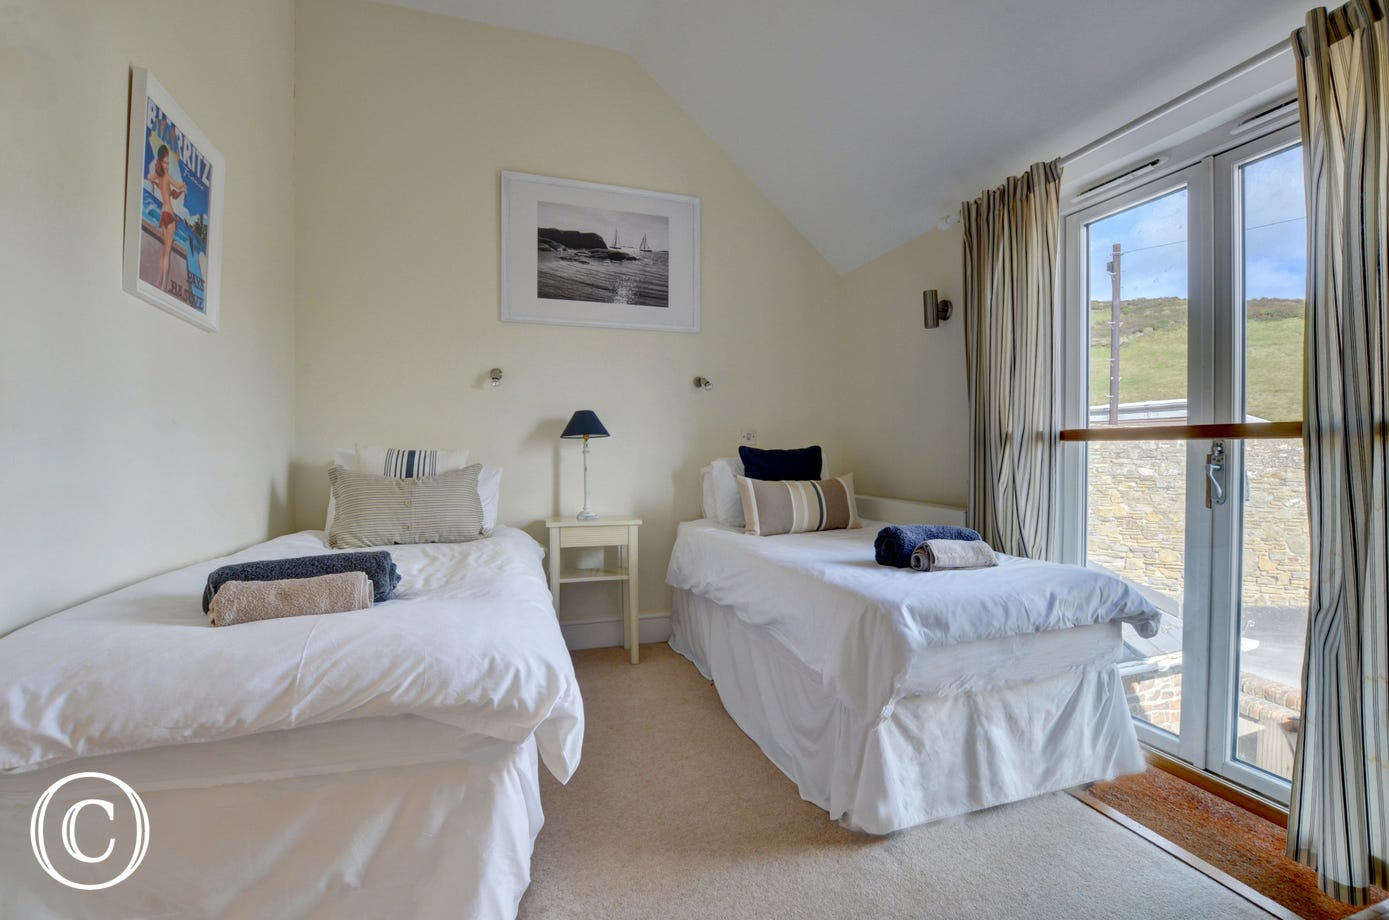 The second bedroom overlooks National Trust countryside and is served by a modern family bathroom